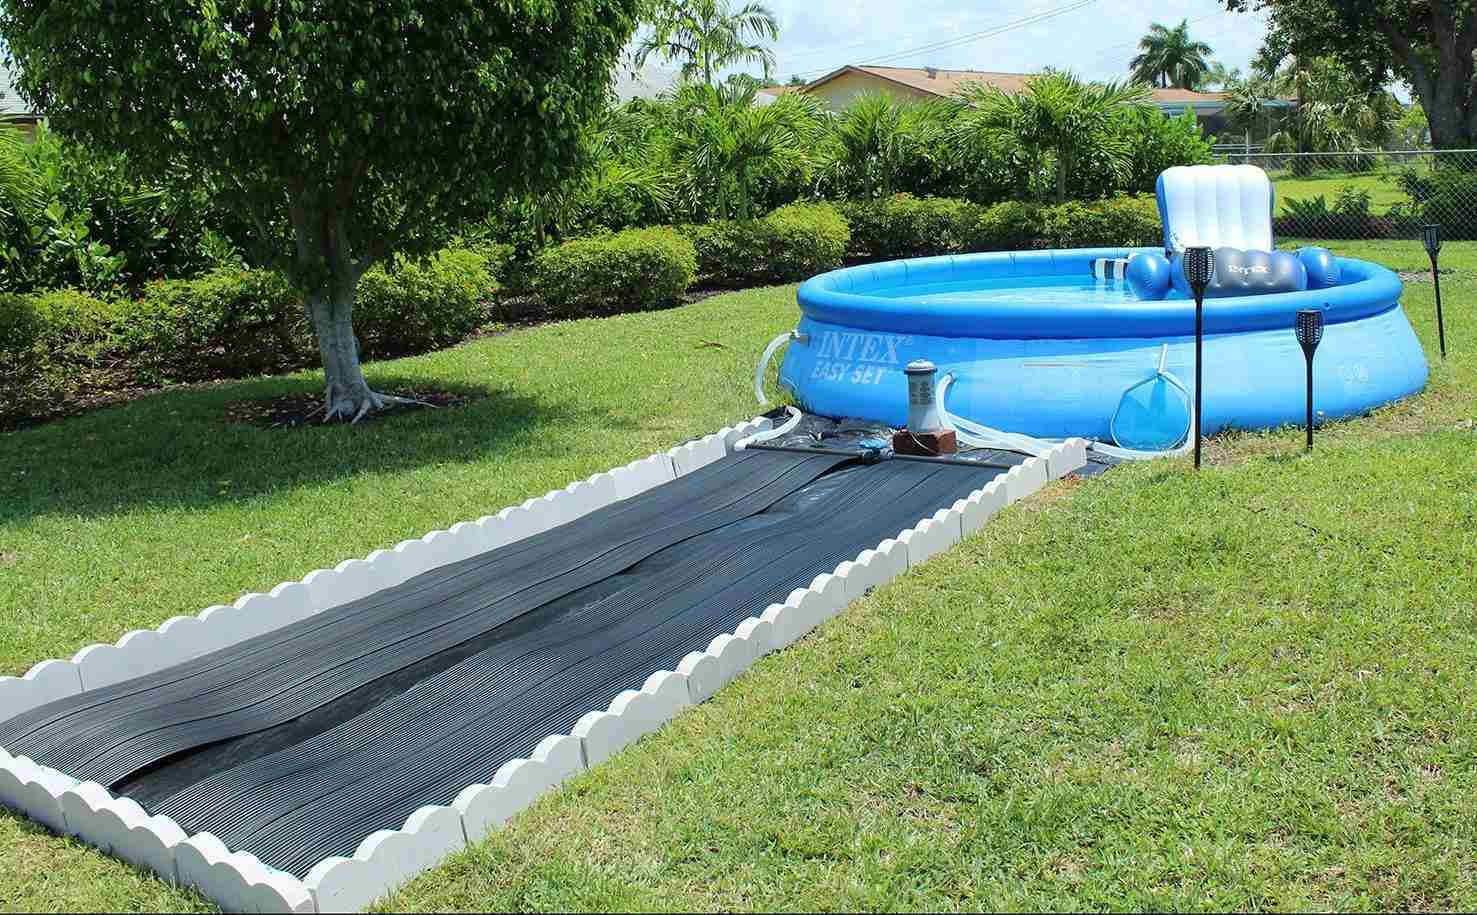 Installed Ground Mounted Solar Panels for Above Ground Pool